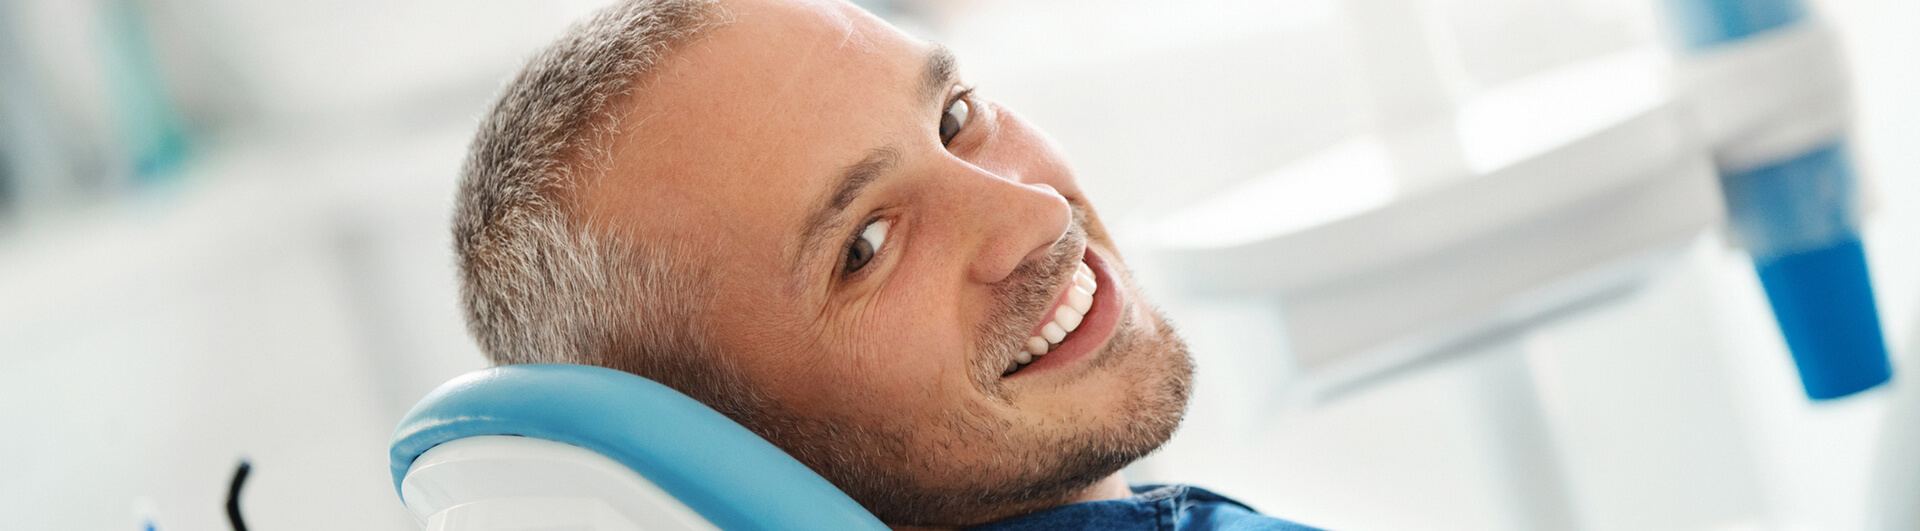 Pain-Free Dental Extractions